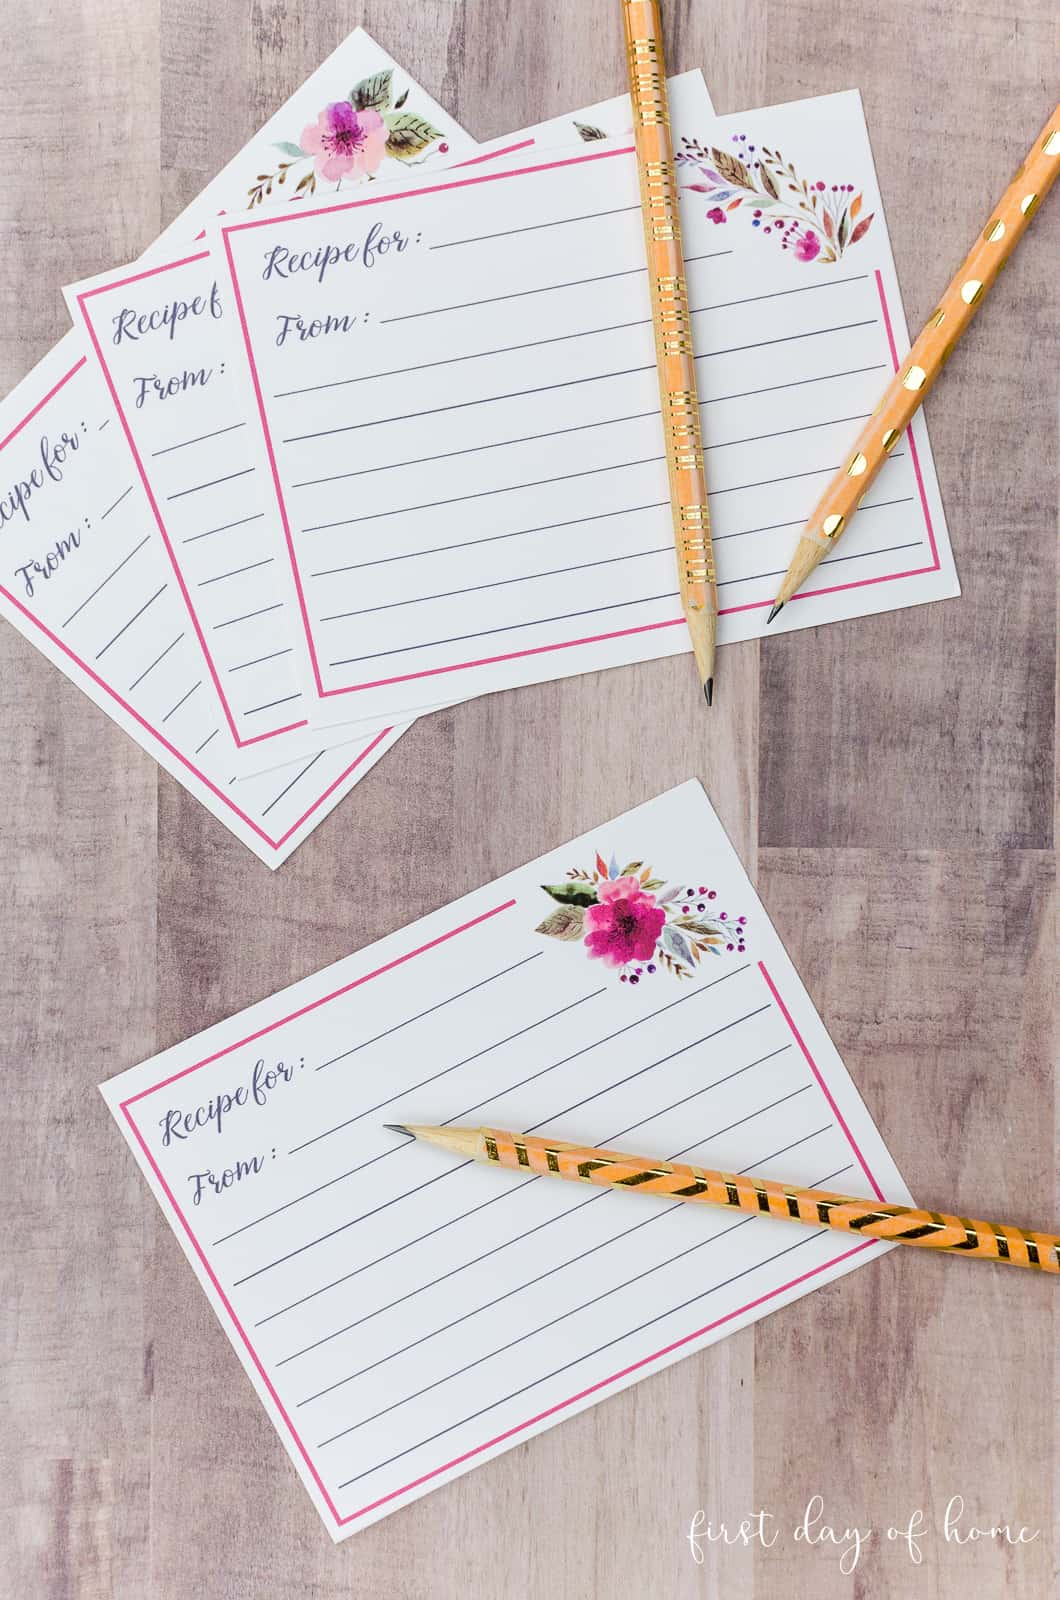 Free printable recipe cards and gold washi tape pencils